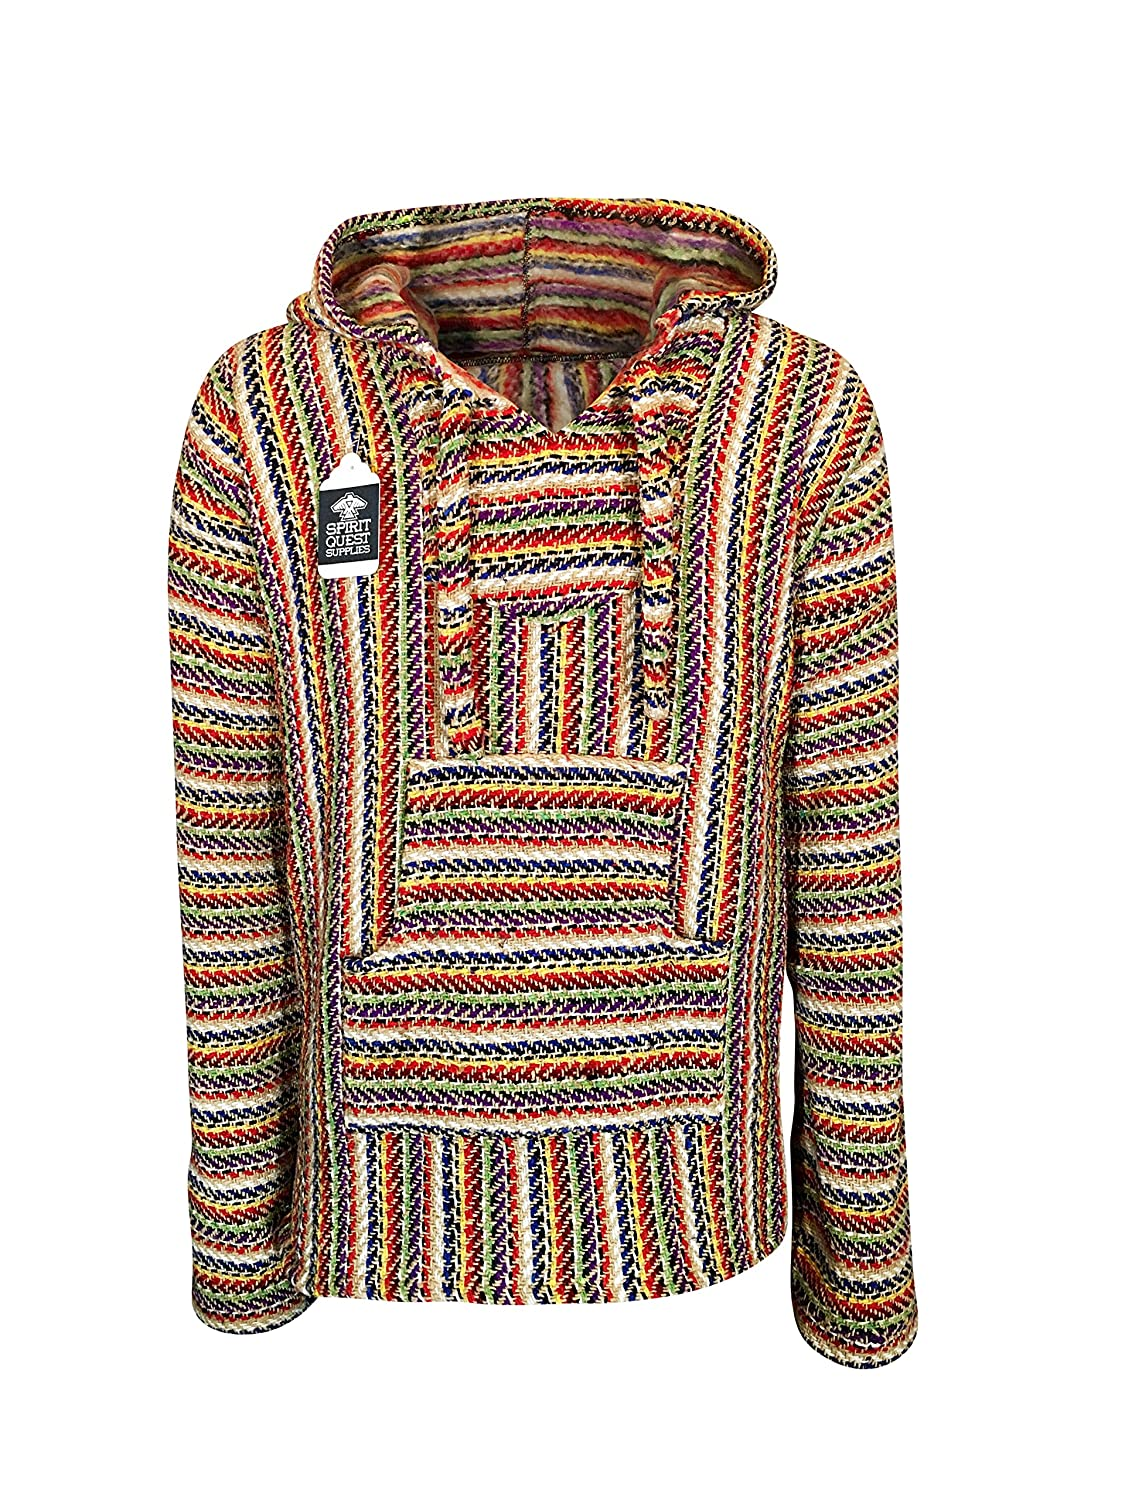 Mens Vintage Shirts – Retro Shirts BuddhaHood Baja Eco Hoodie | Choose Color & Size | Embrace Outdoors in Warmth! $36.99 AT vintagedancer.com